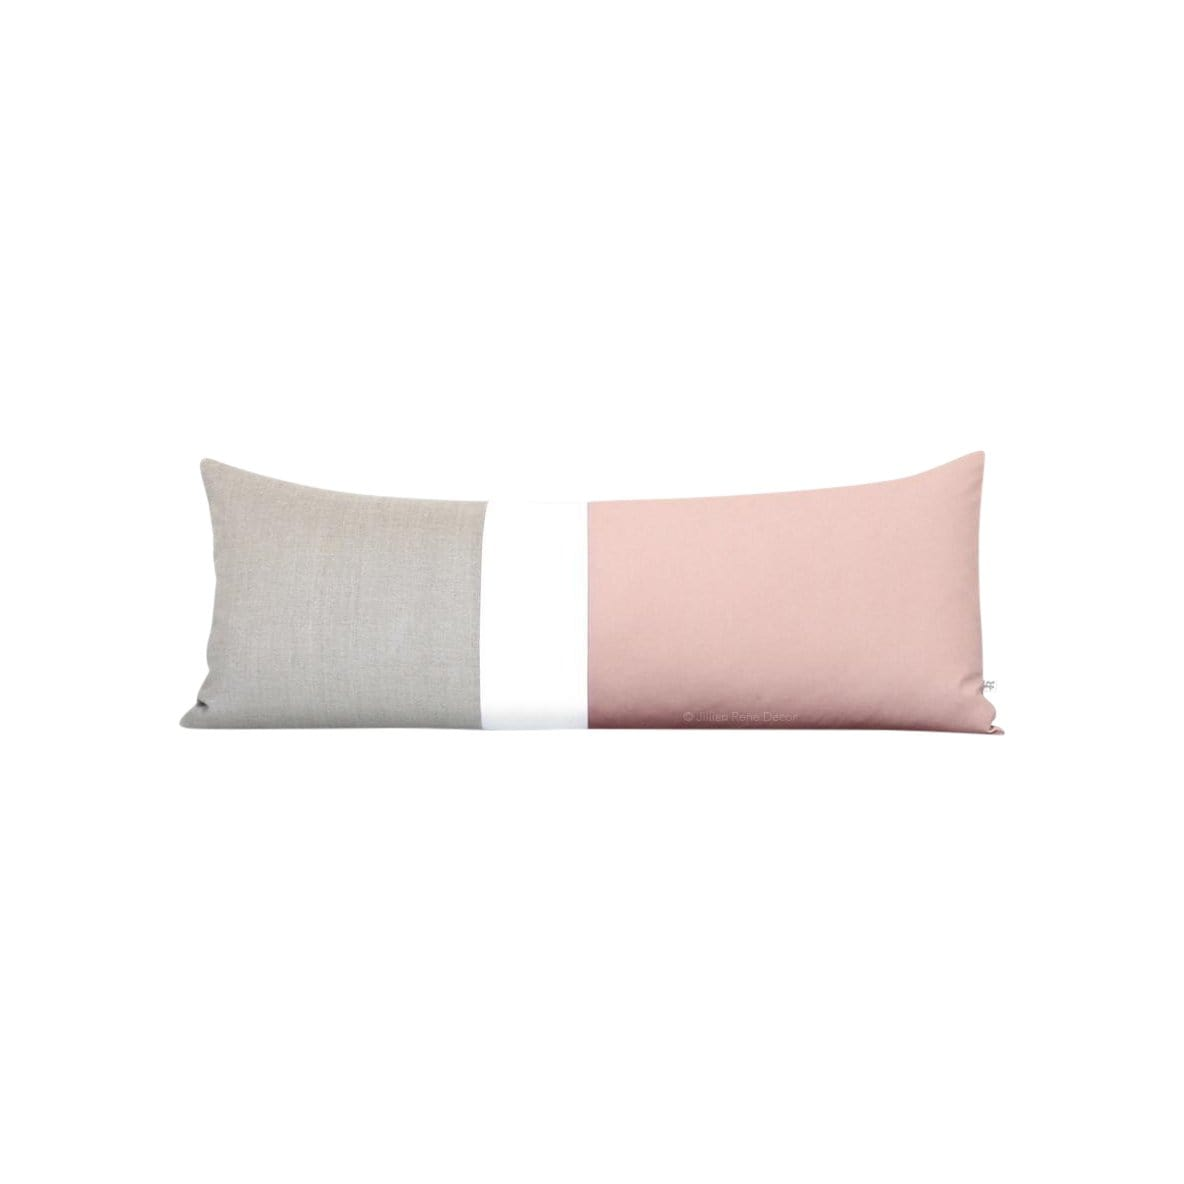 Jillian Rene Decor Cushions + Throws Colorblock Blush + Cream Pillow